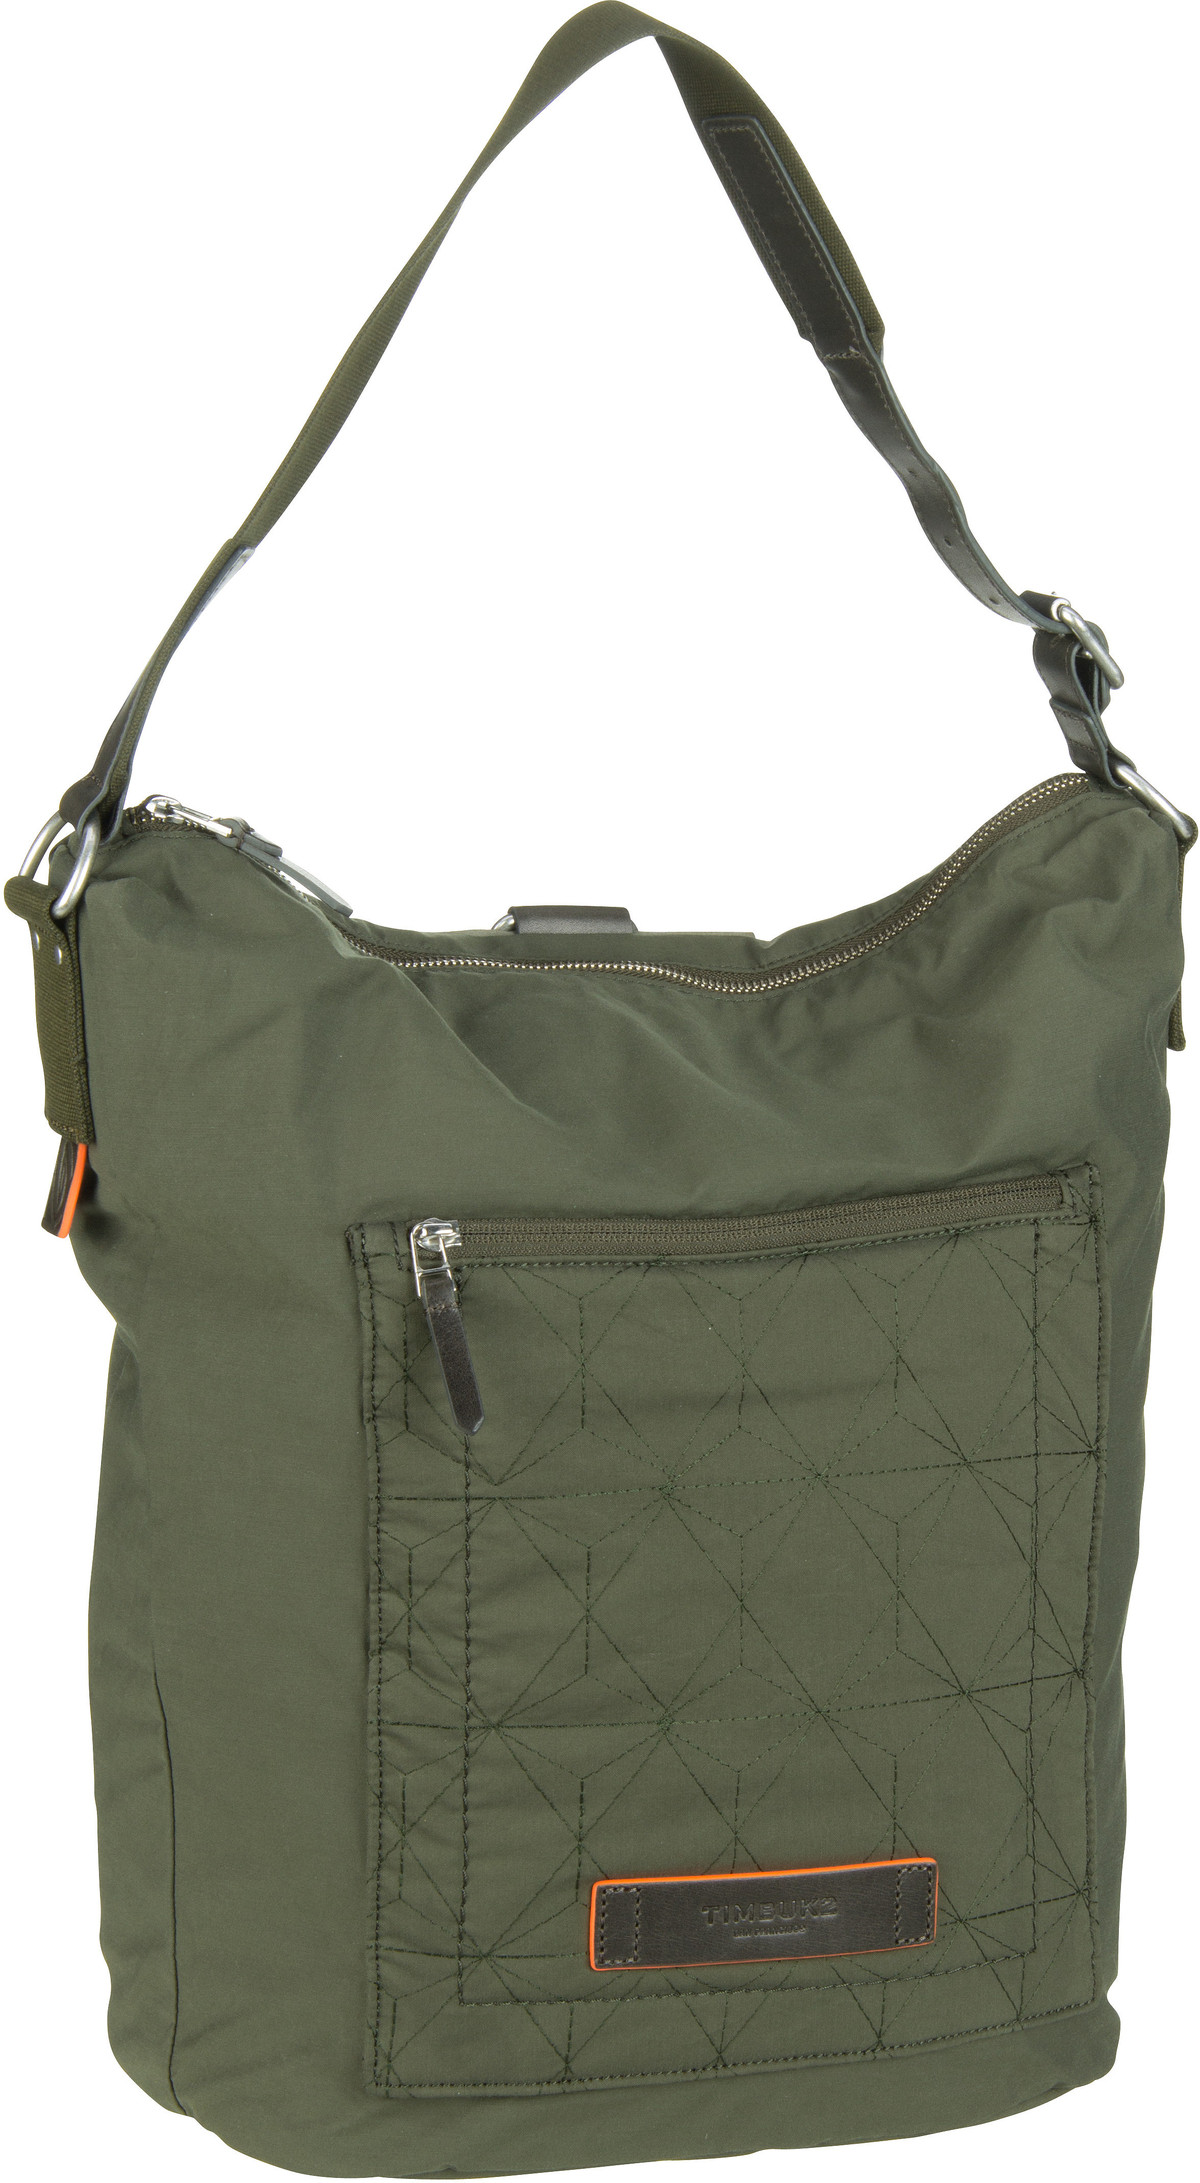 Handtasche Bucket Bag Army (20.4 Liter)